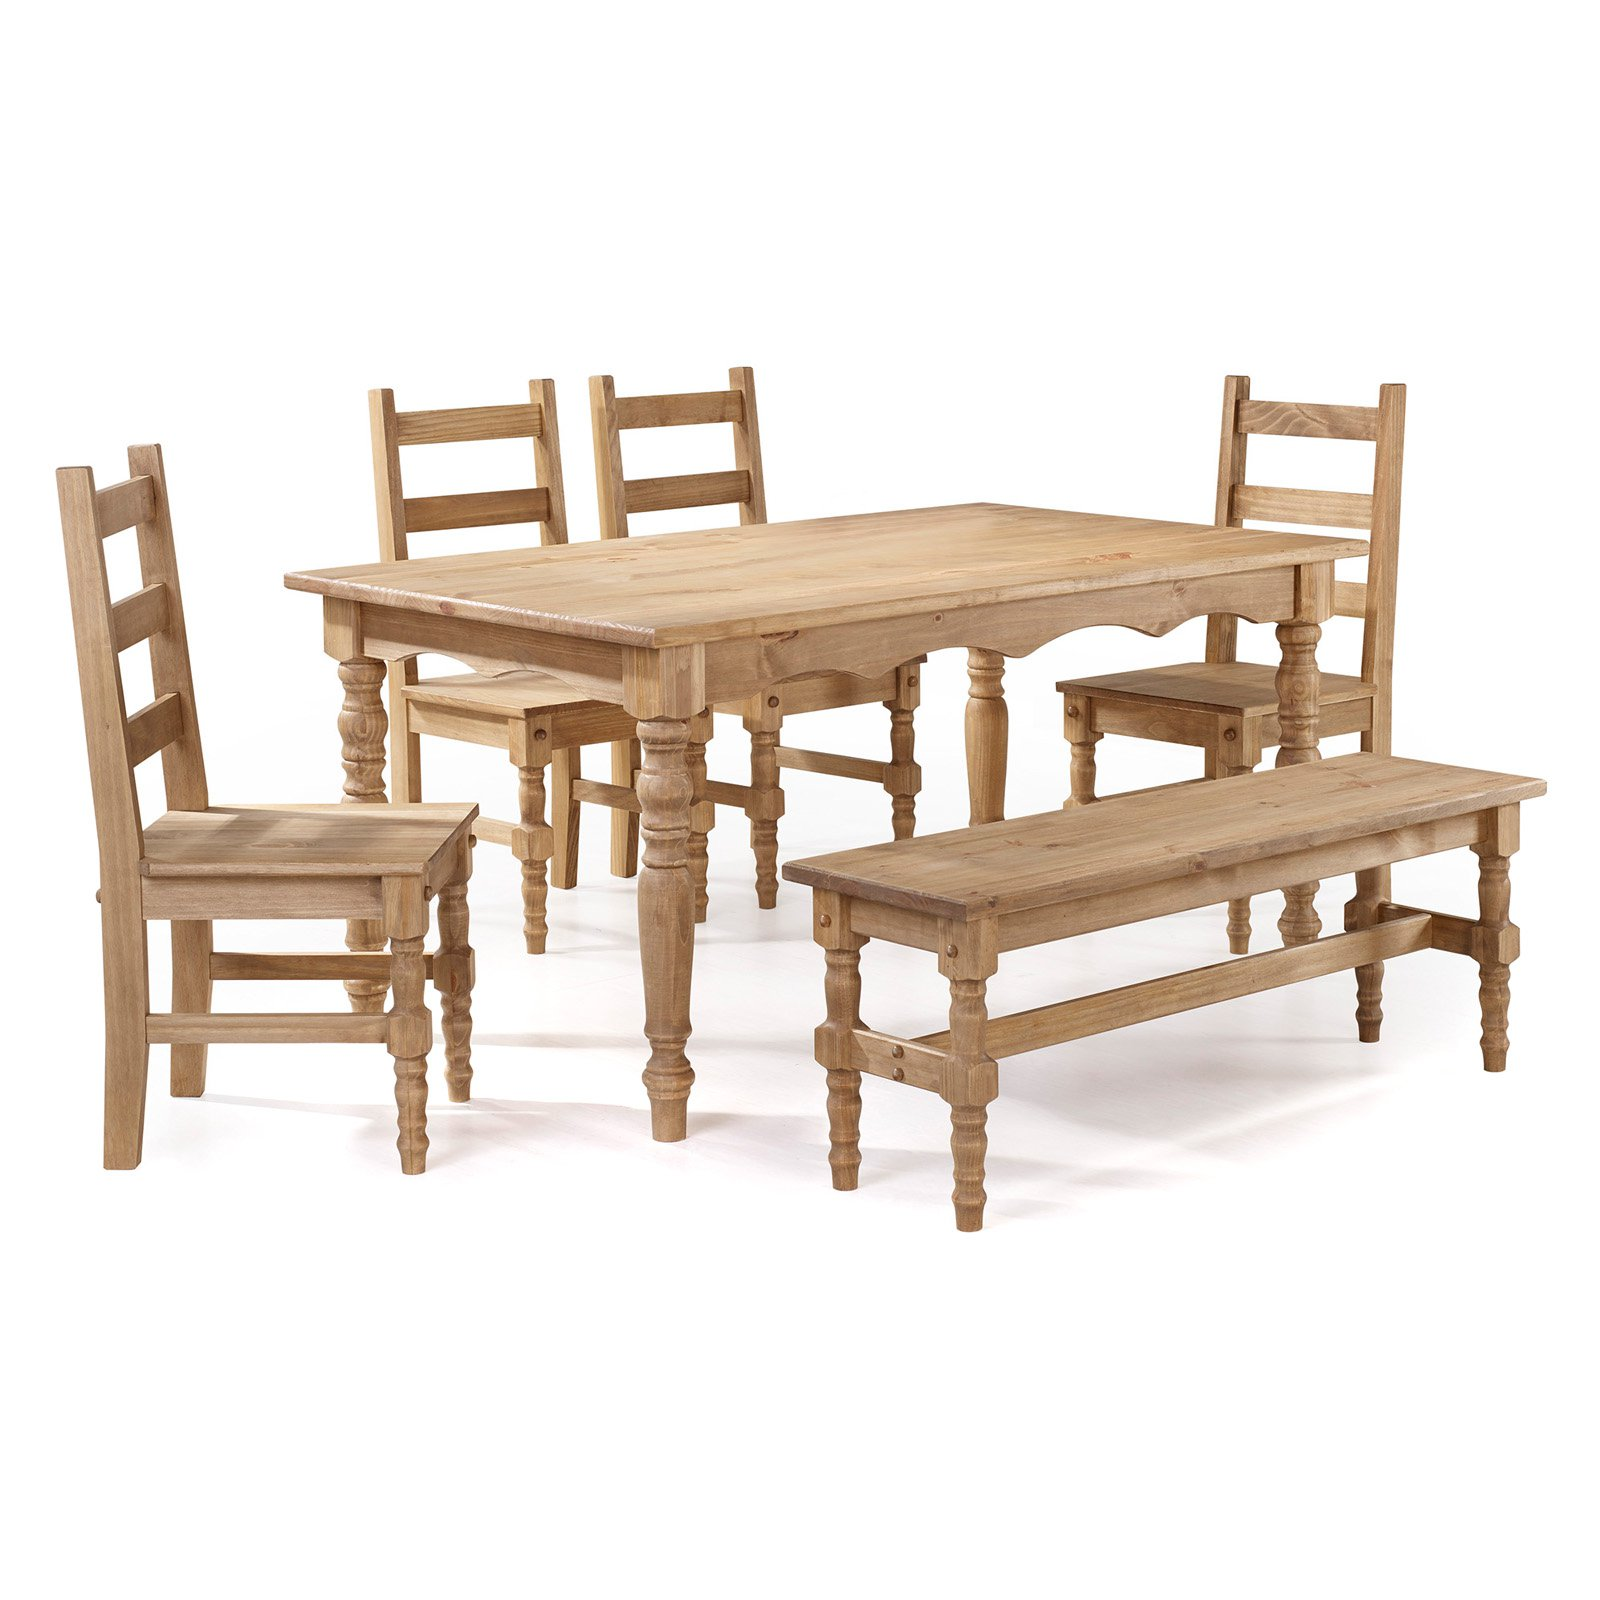 Manhattan Comfort Jay Dining Table Set with 1 Bench and 4 Chairs